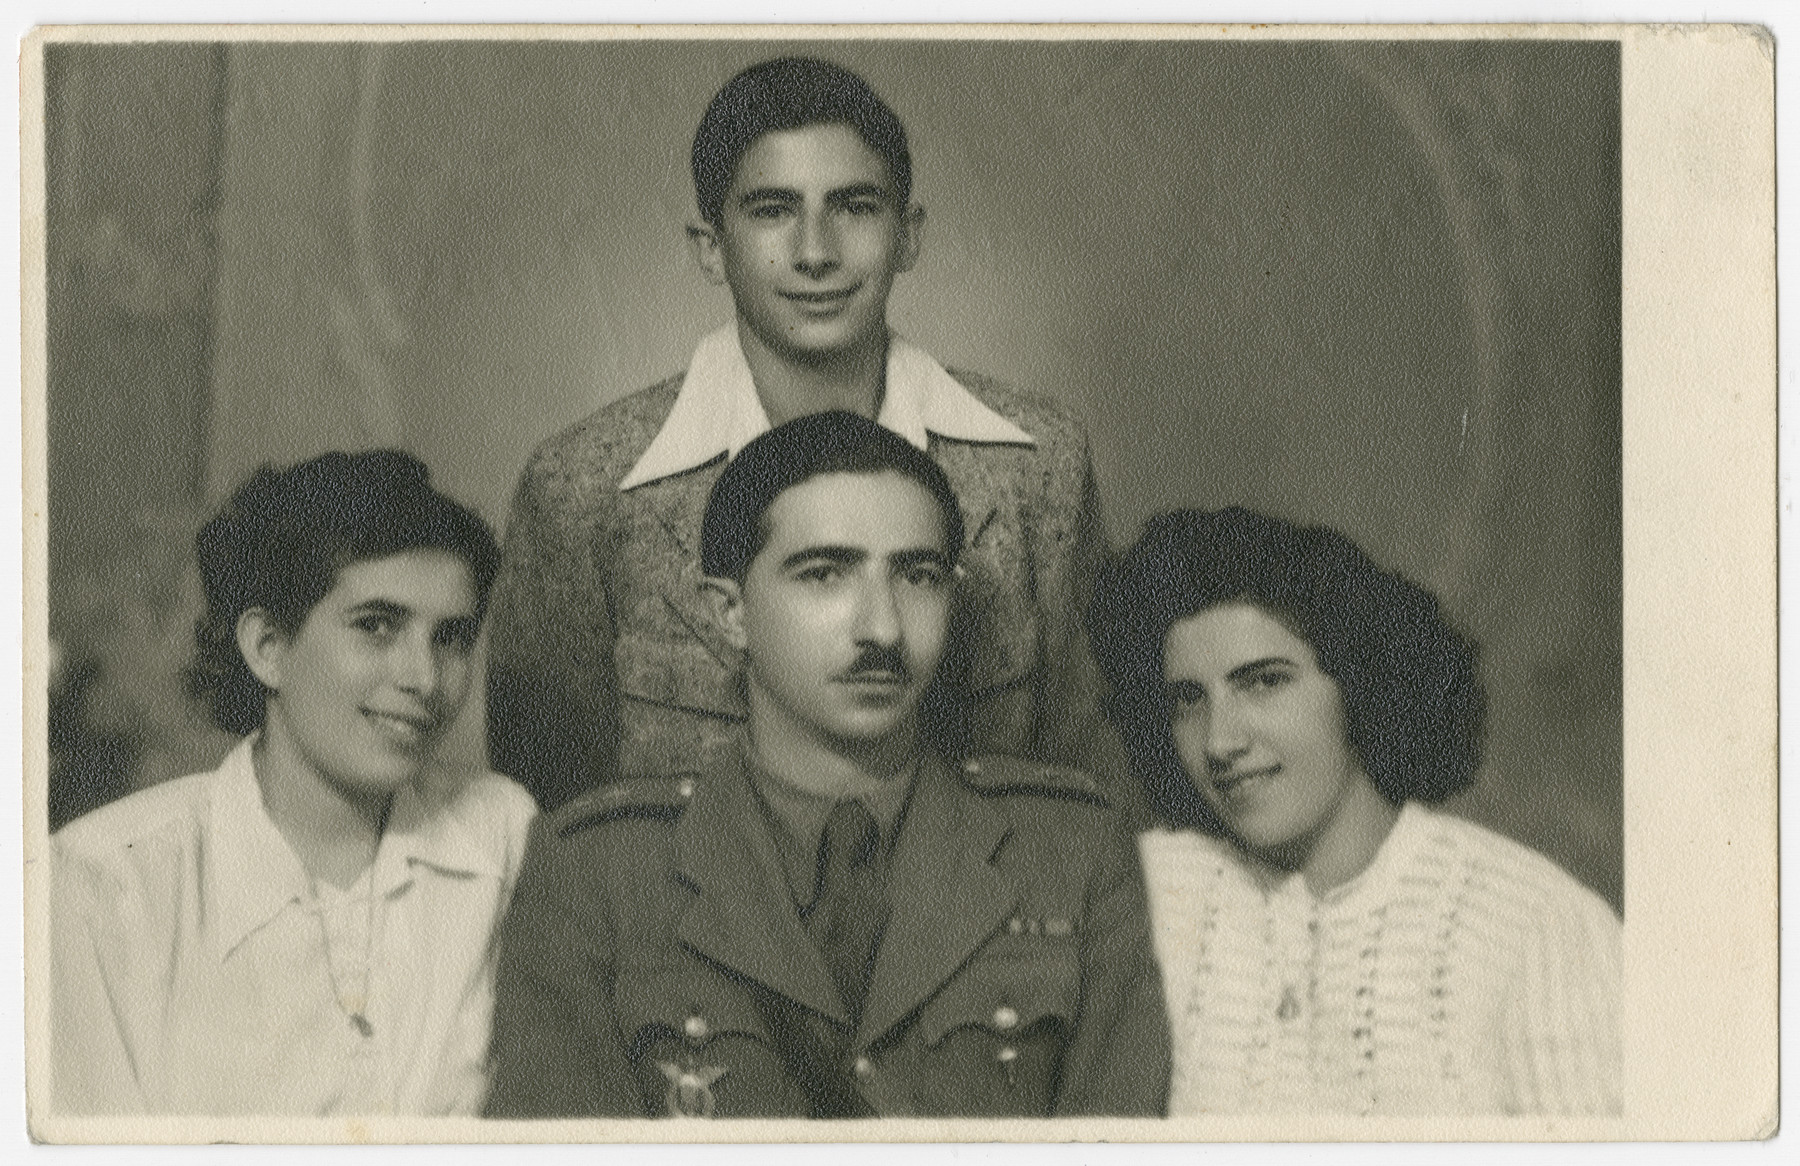 Postwar portrait of the surviving Smilovic siblings.  Sitting from left to right are Rivsvu, Isak Leib and Heddy.  Sziku is standing behind them.